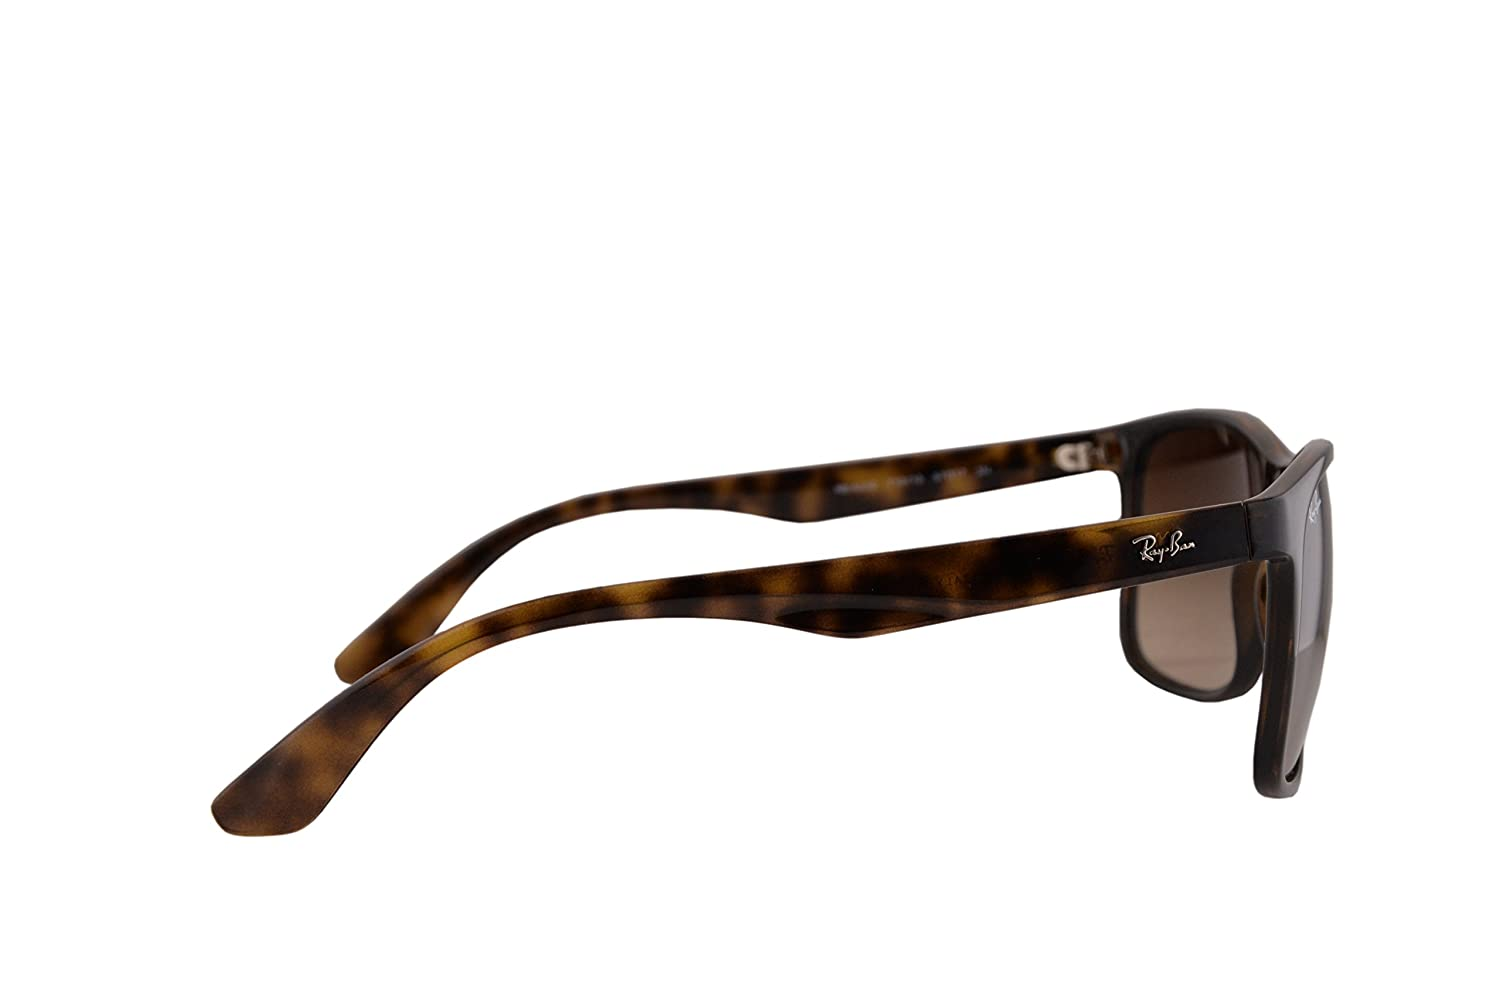 1b9692b446 Ray Ban RB4232 Sunglasses Havana w Brown Gradient Lens 71013 RB 4232   Amazon.co.uk  Clothing